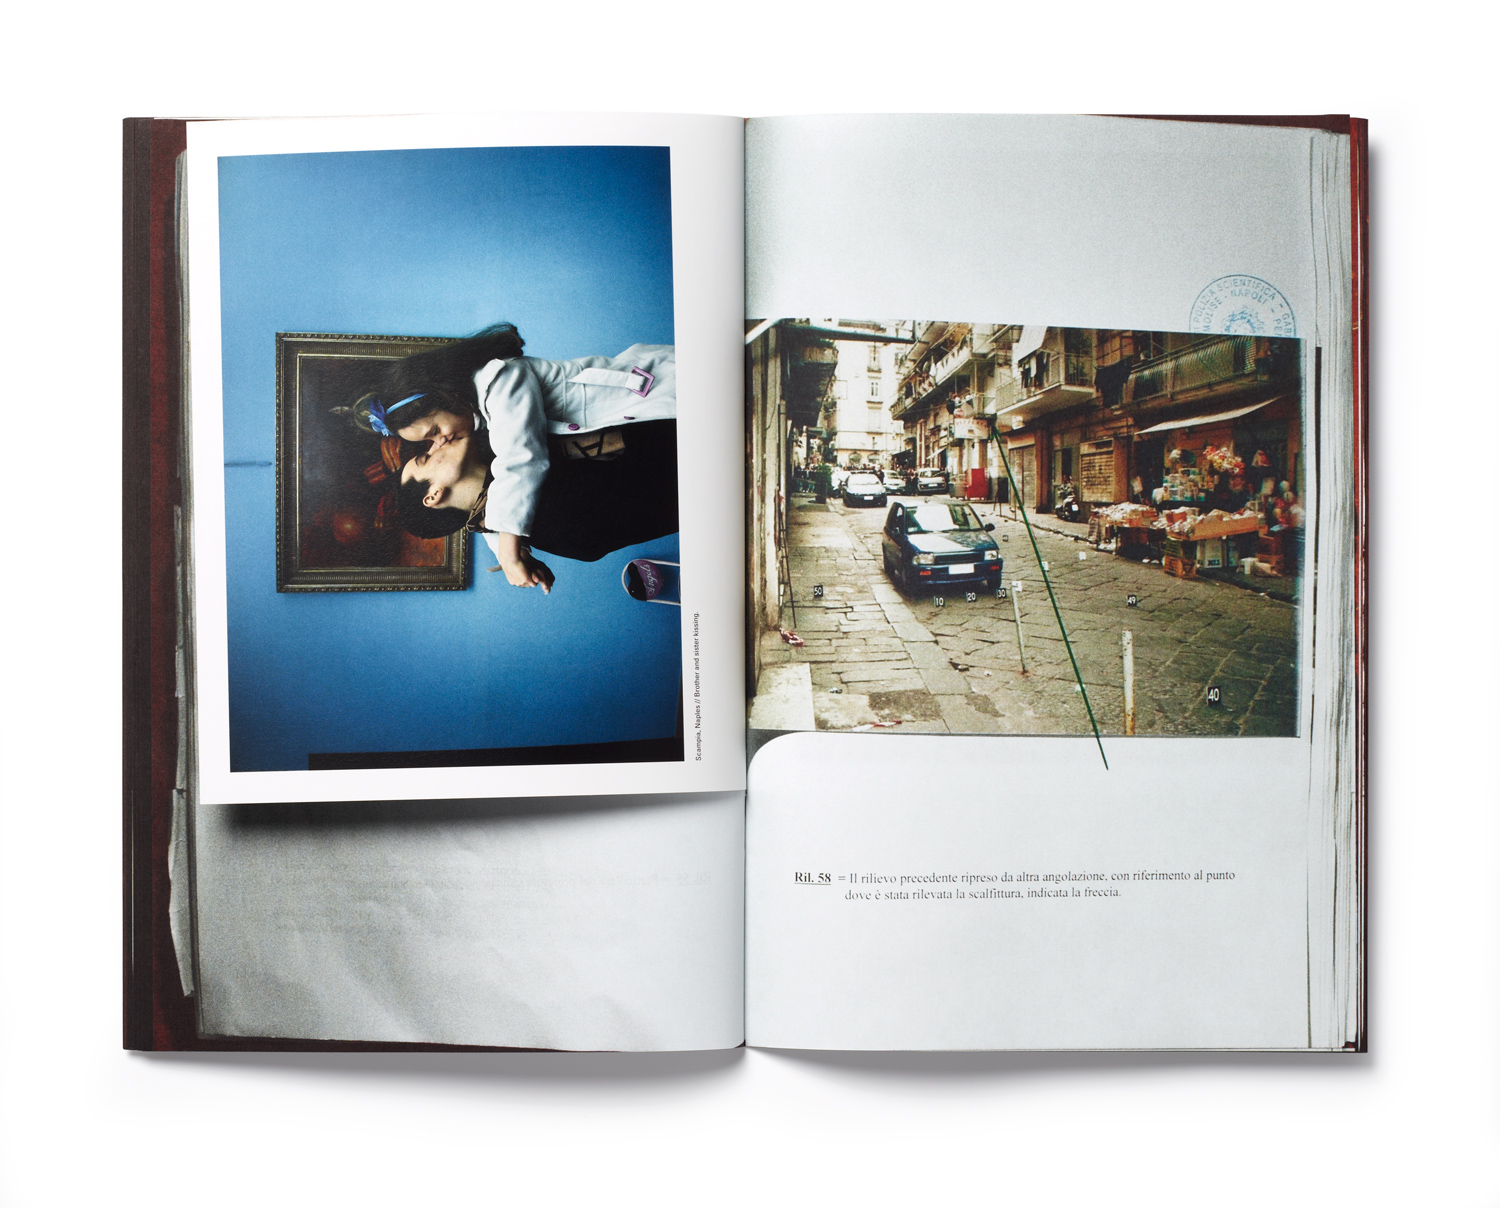 An inside spread from left: Scampia, Naples. Brother and Sister kissing. Right: Evidence 58, previous evidence shot from a different angle, the arrow indicates the spot where the hole caused by one of the three bullets were detected.